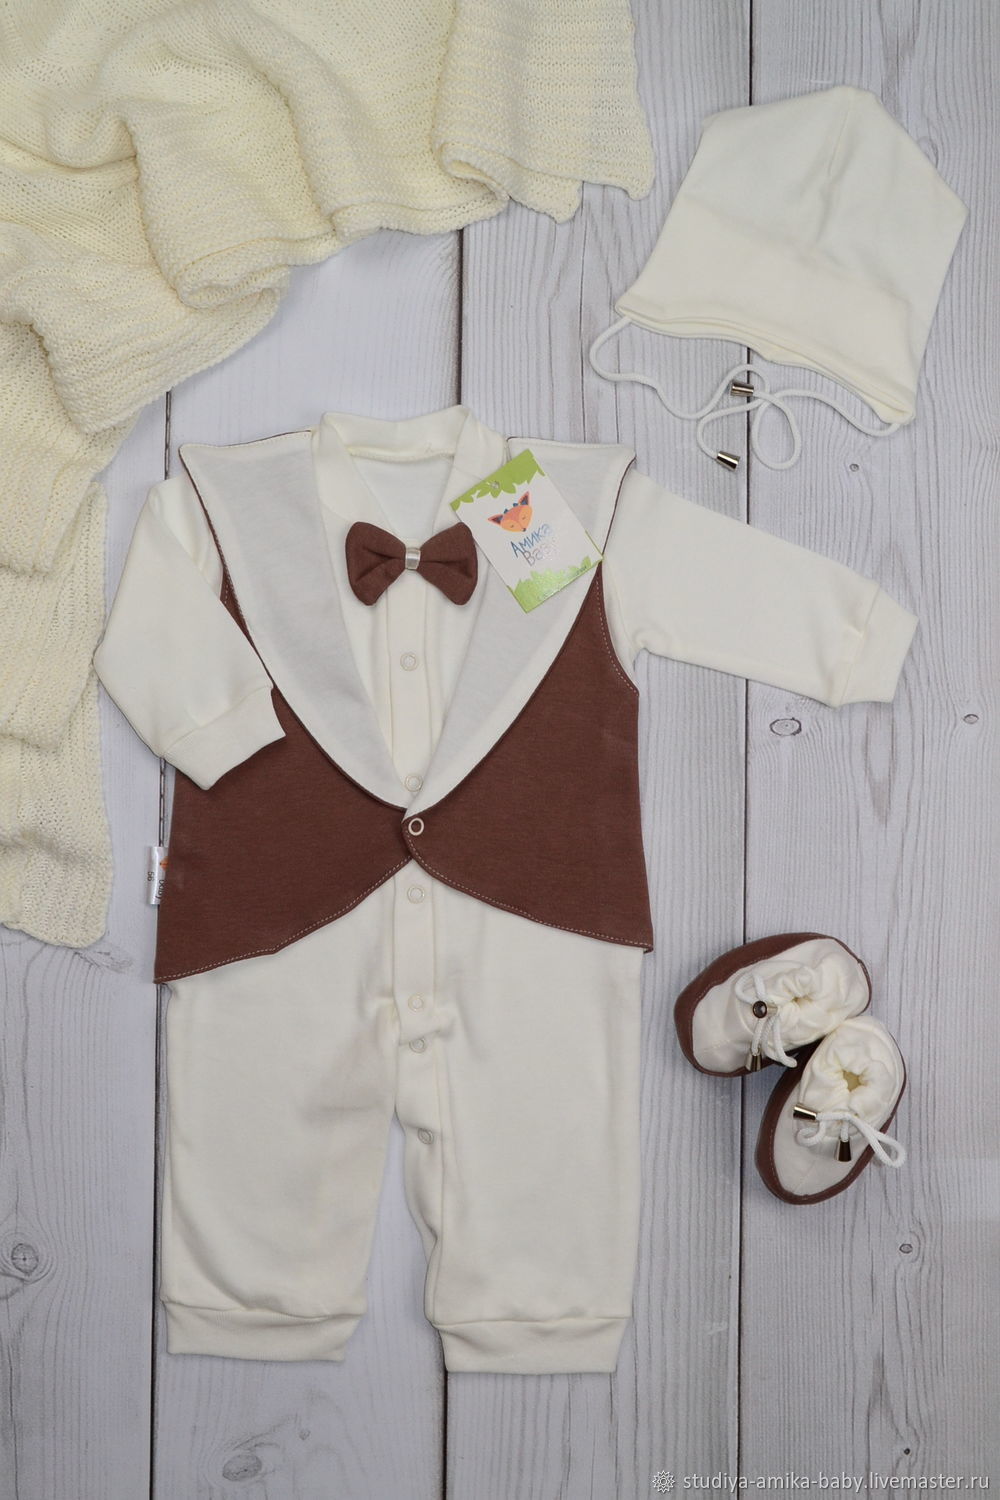 Suit for discharge 'Aristocrat' for the boy, Baby Clothing Sets, Moscow,  Фото №1